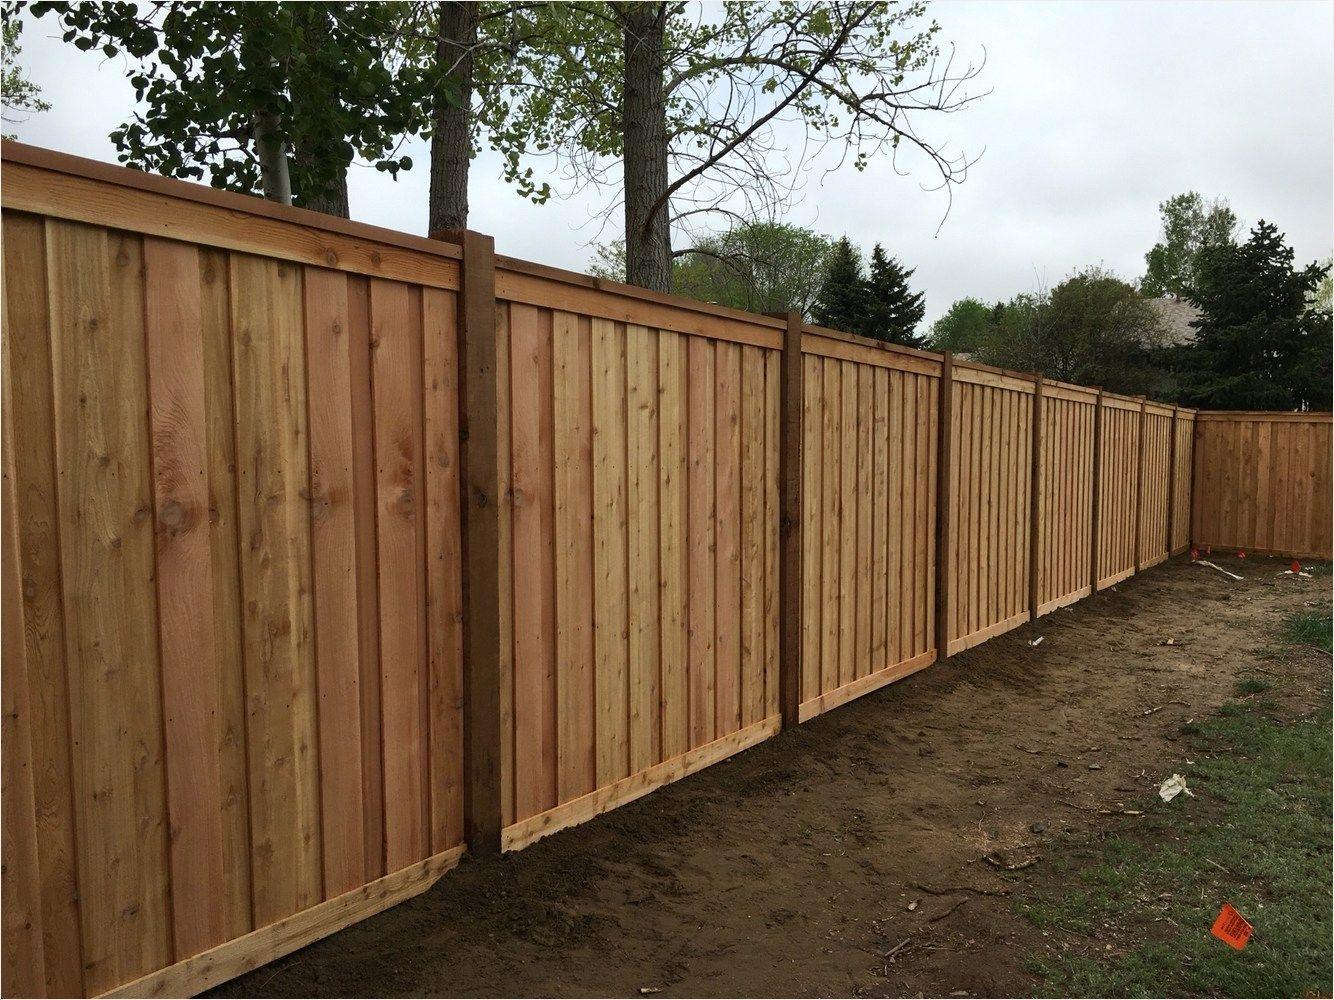 Vinyl Privacy Fence Ideas 40 Backyard Fences Wood Fence Design